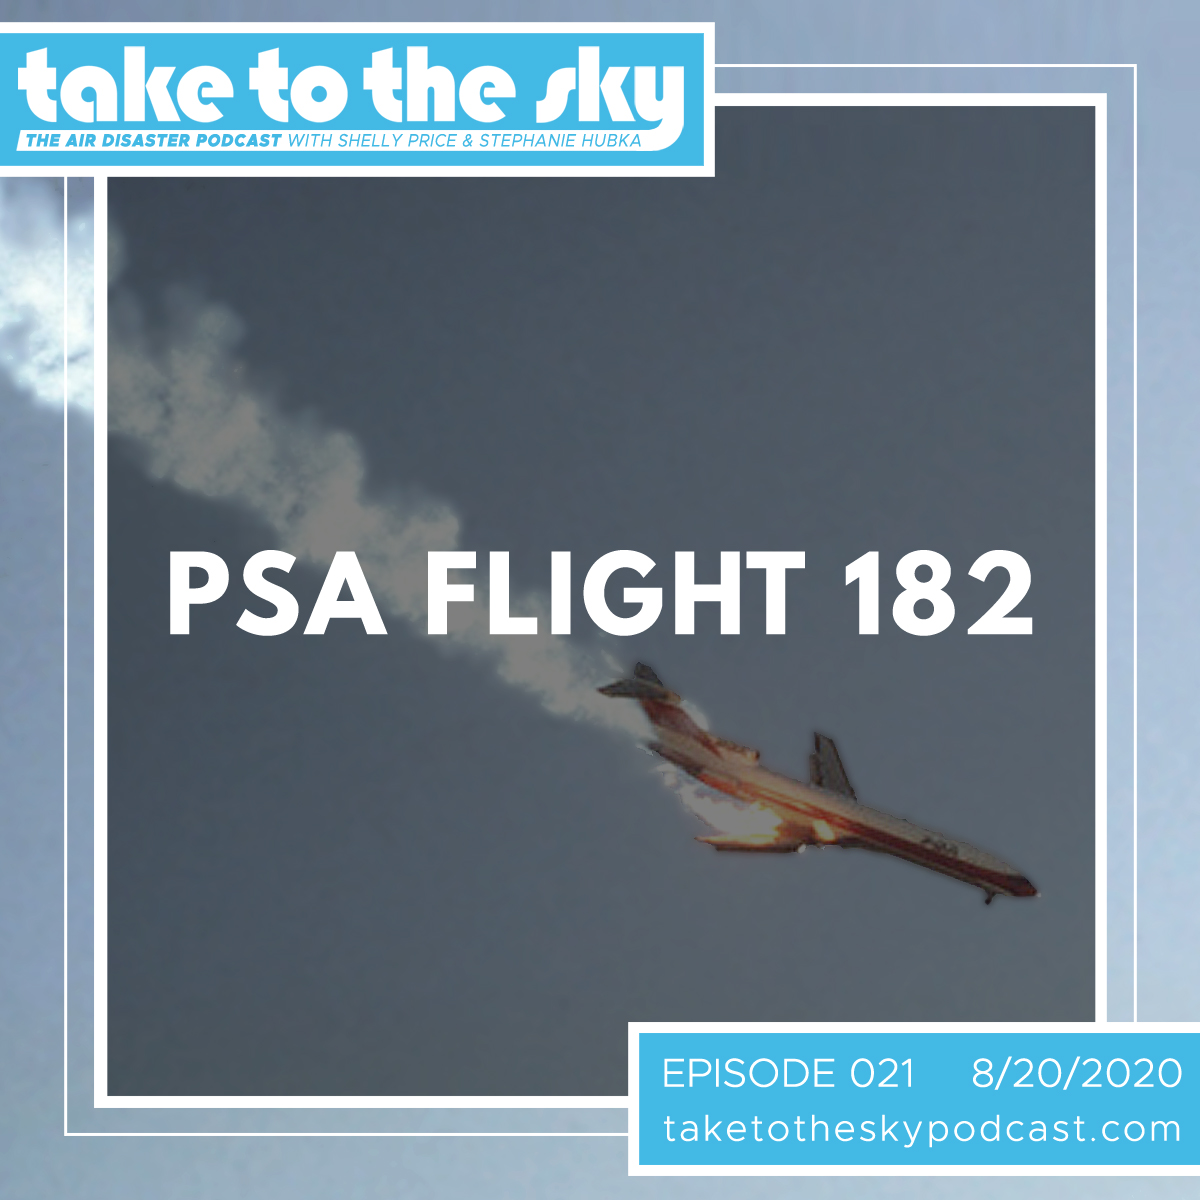 Take to the Sky Episode 021: Pacific Southwest Airlines Flight 182